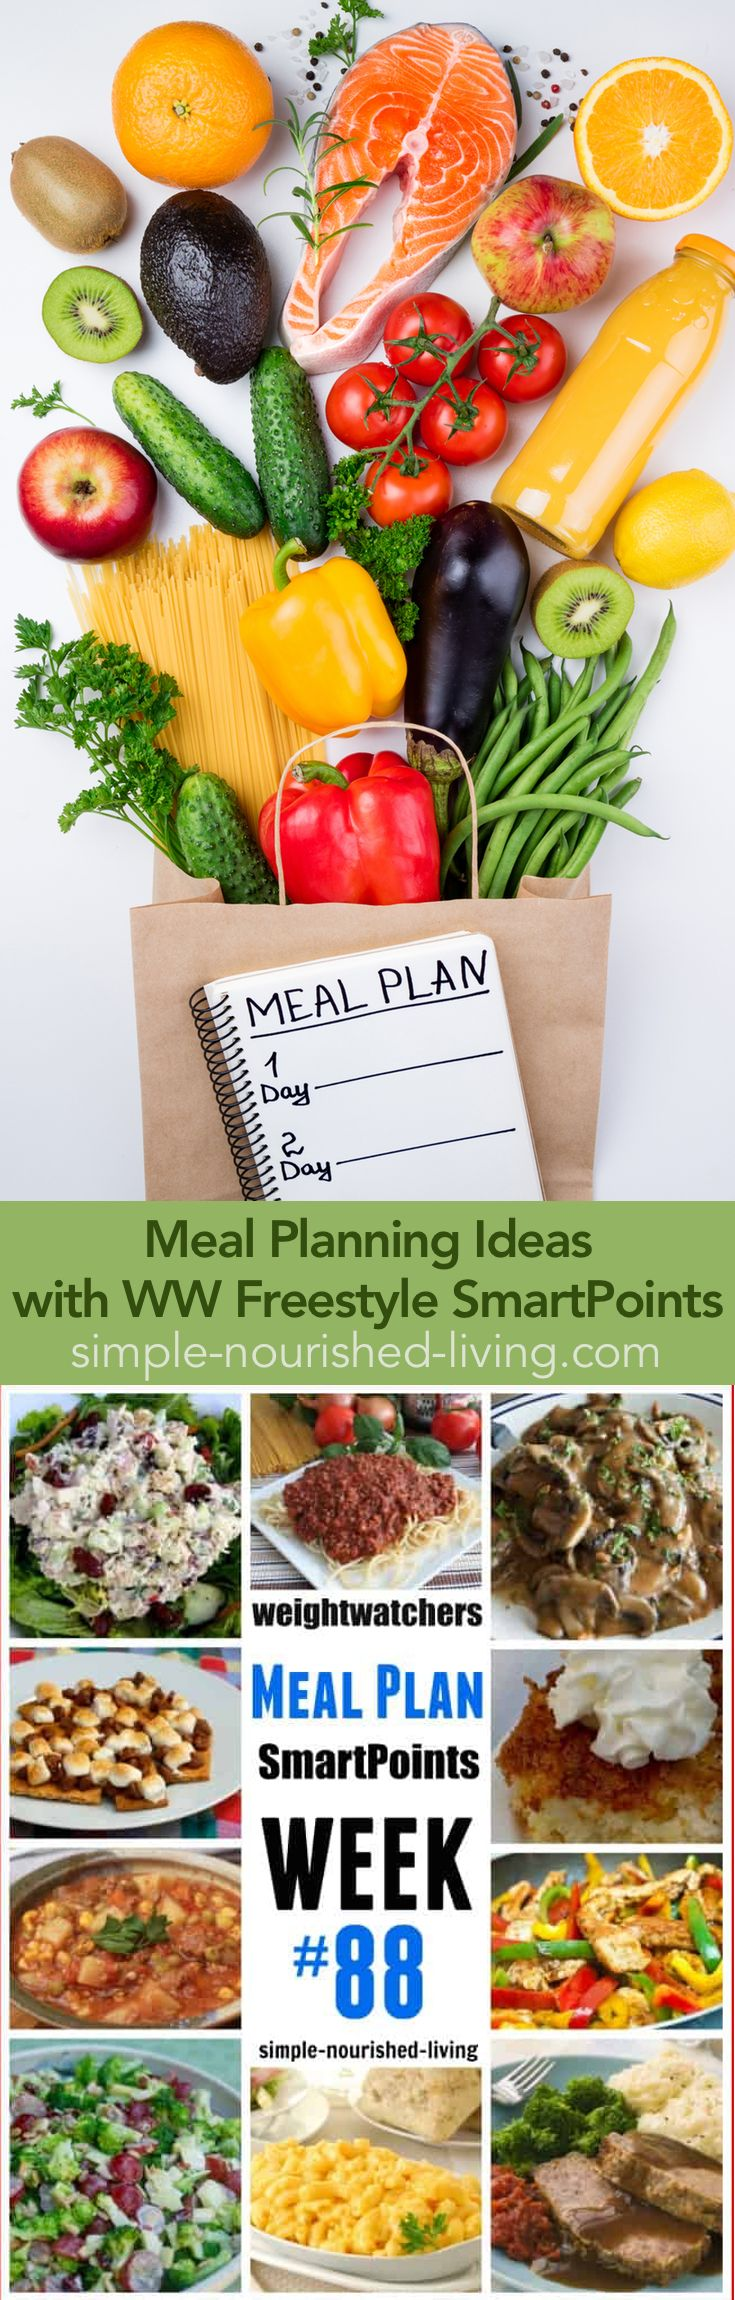 Weight Watchers Dinner Menu #88 – with WW Freestyle SmartPoints – Featuring Slender Kitchen's Meal Plans. The Key to Eating Well is Cooking... And The Key to Consistent Cooking is Planning!